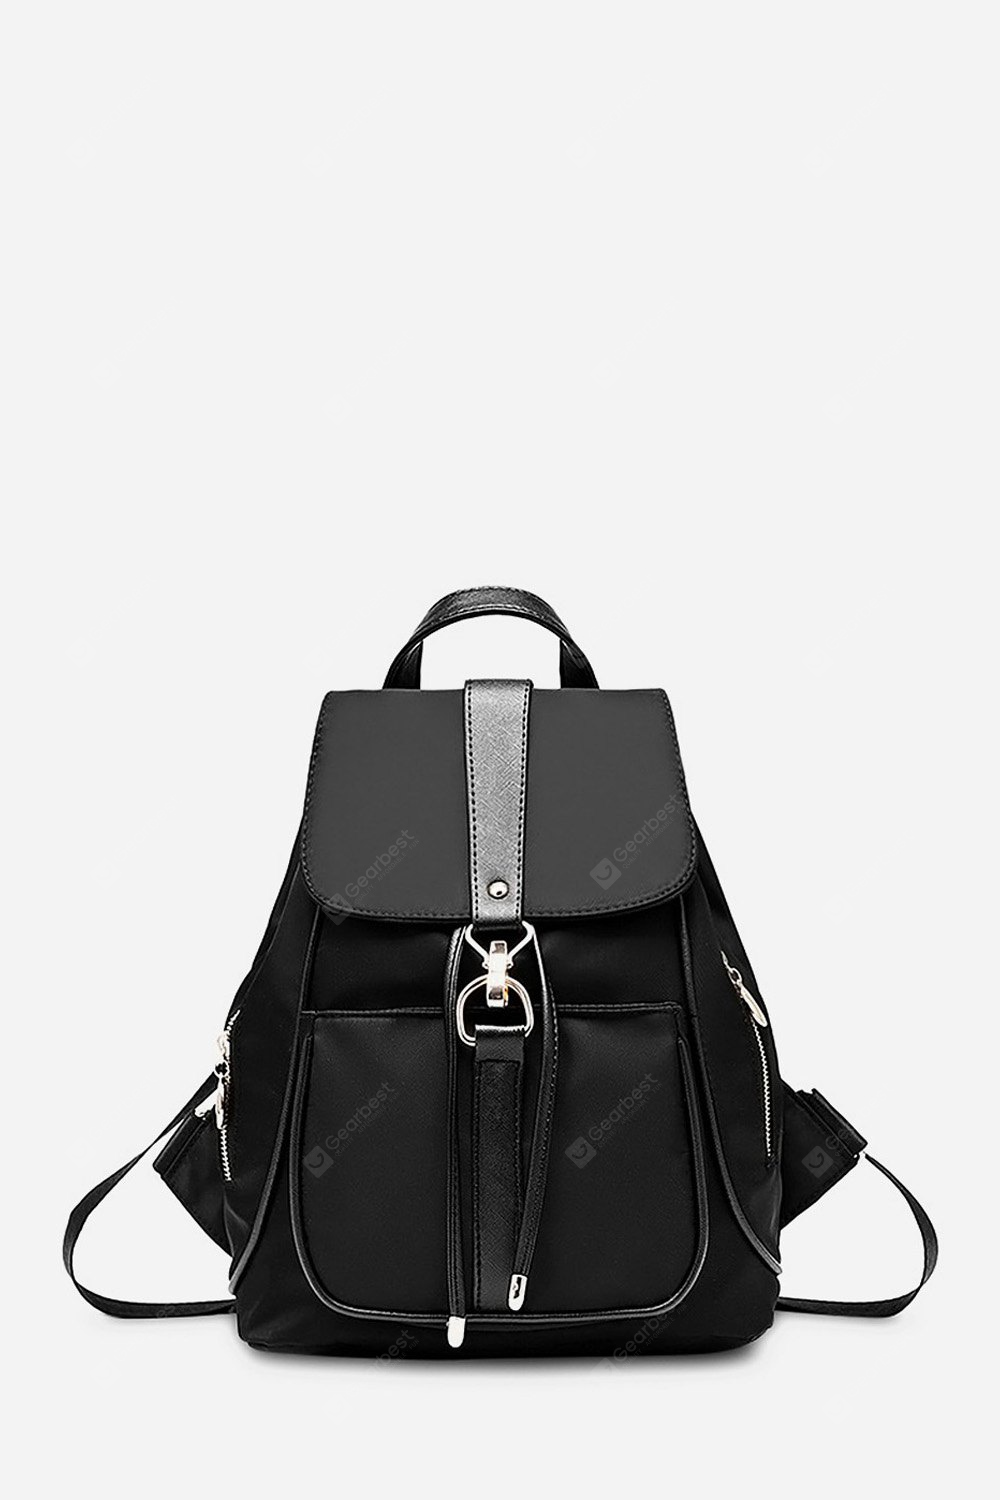 Women Fashion Water-resistant Nylon Backpack VERTICAL BLACK